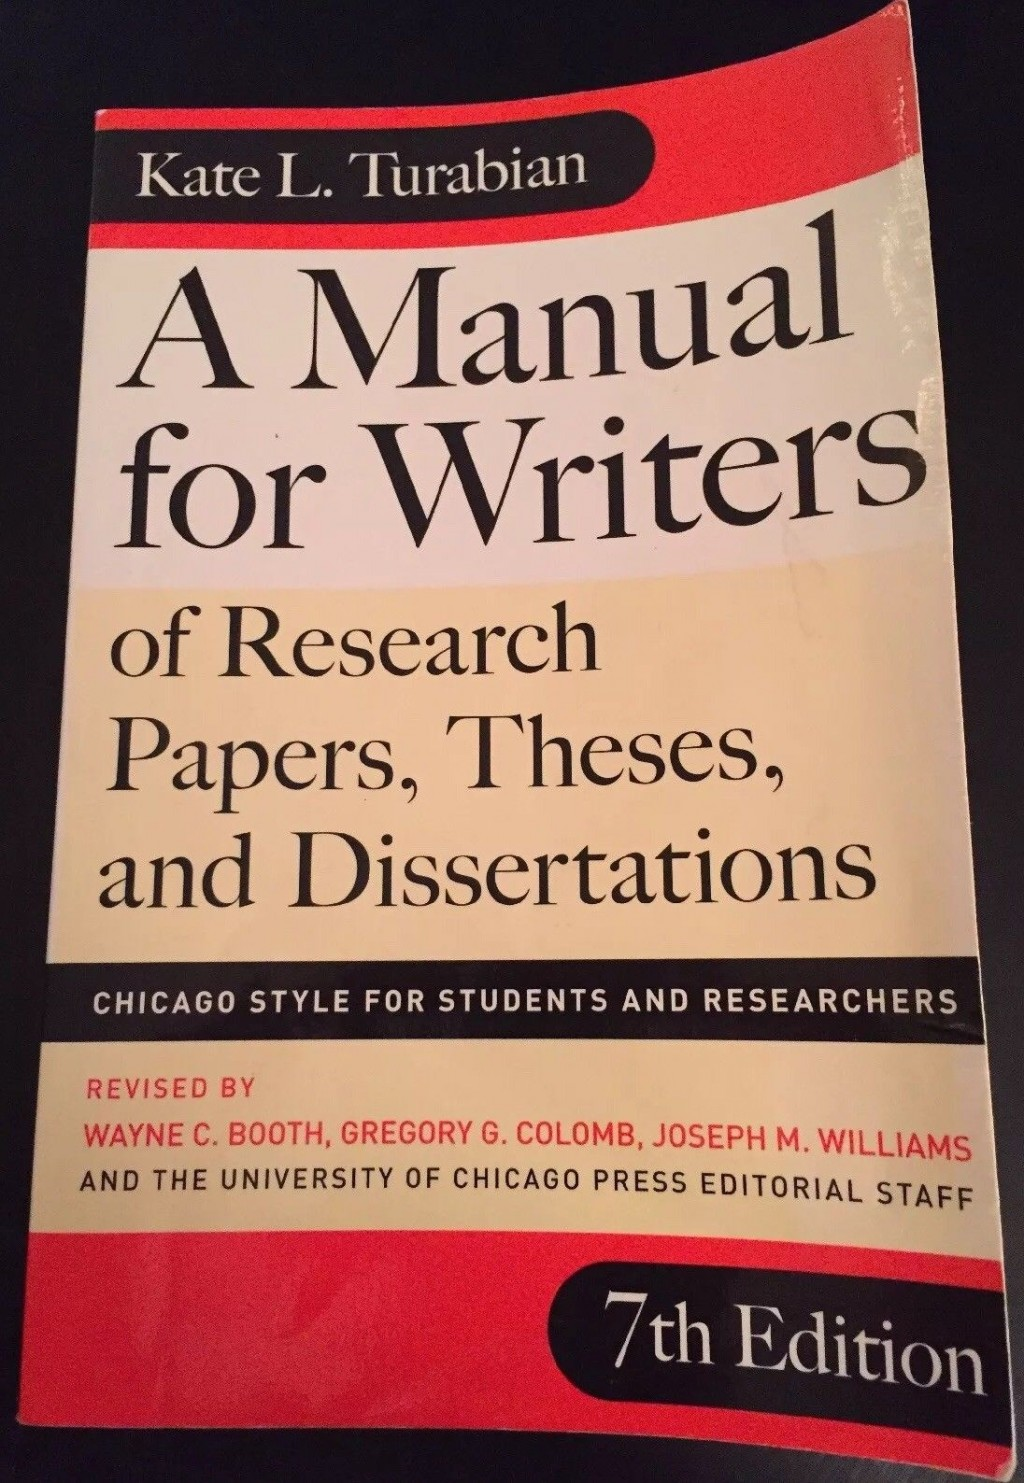 013 S L1600 Research Paper Manual For Writers Of Papers Theses And Sensational A Dissertations Ed. 8 8th Edition Ninth Pdf Large